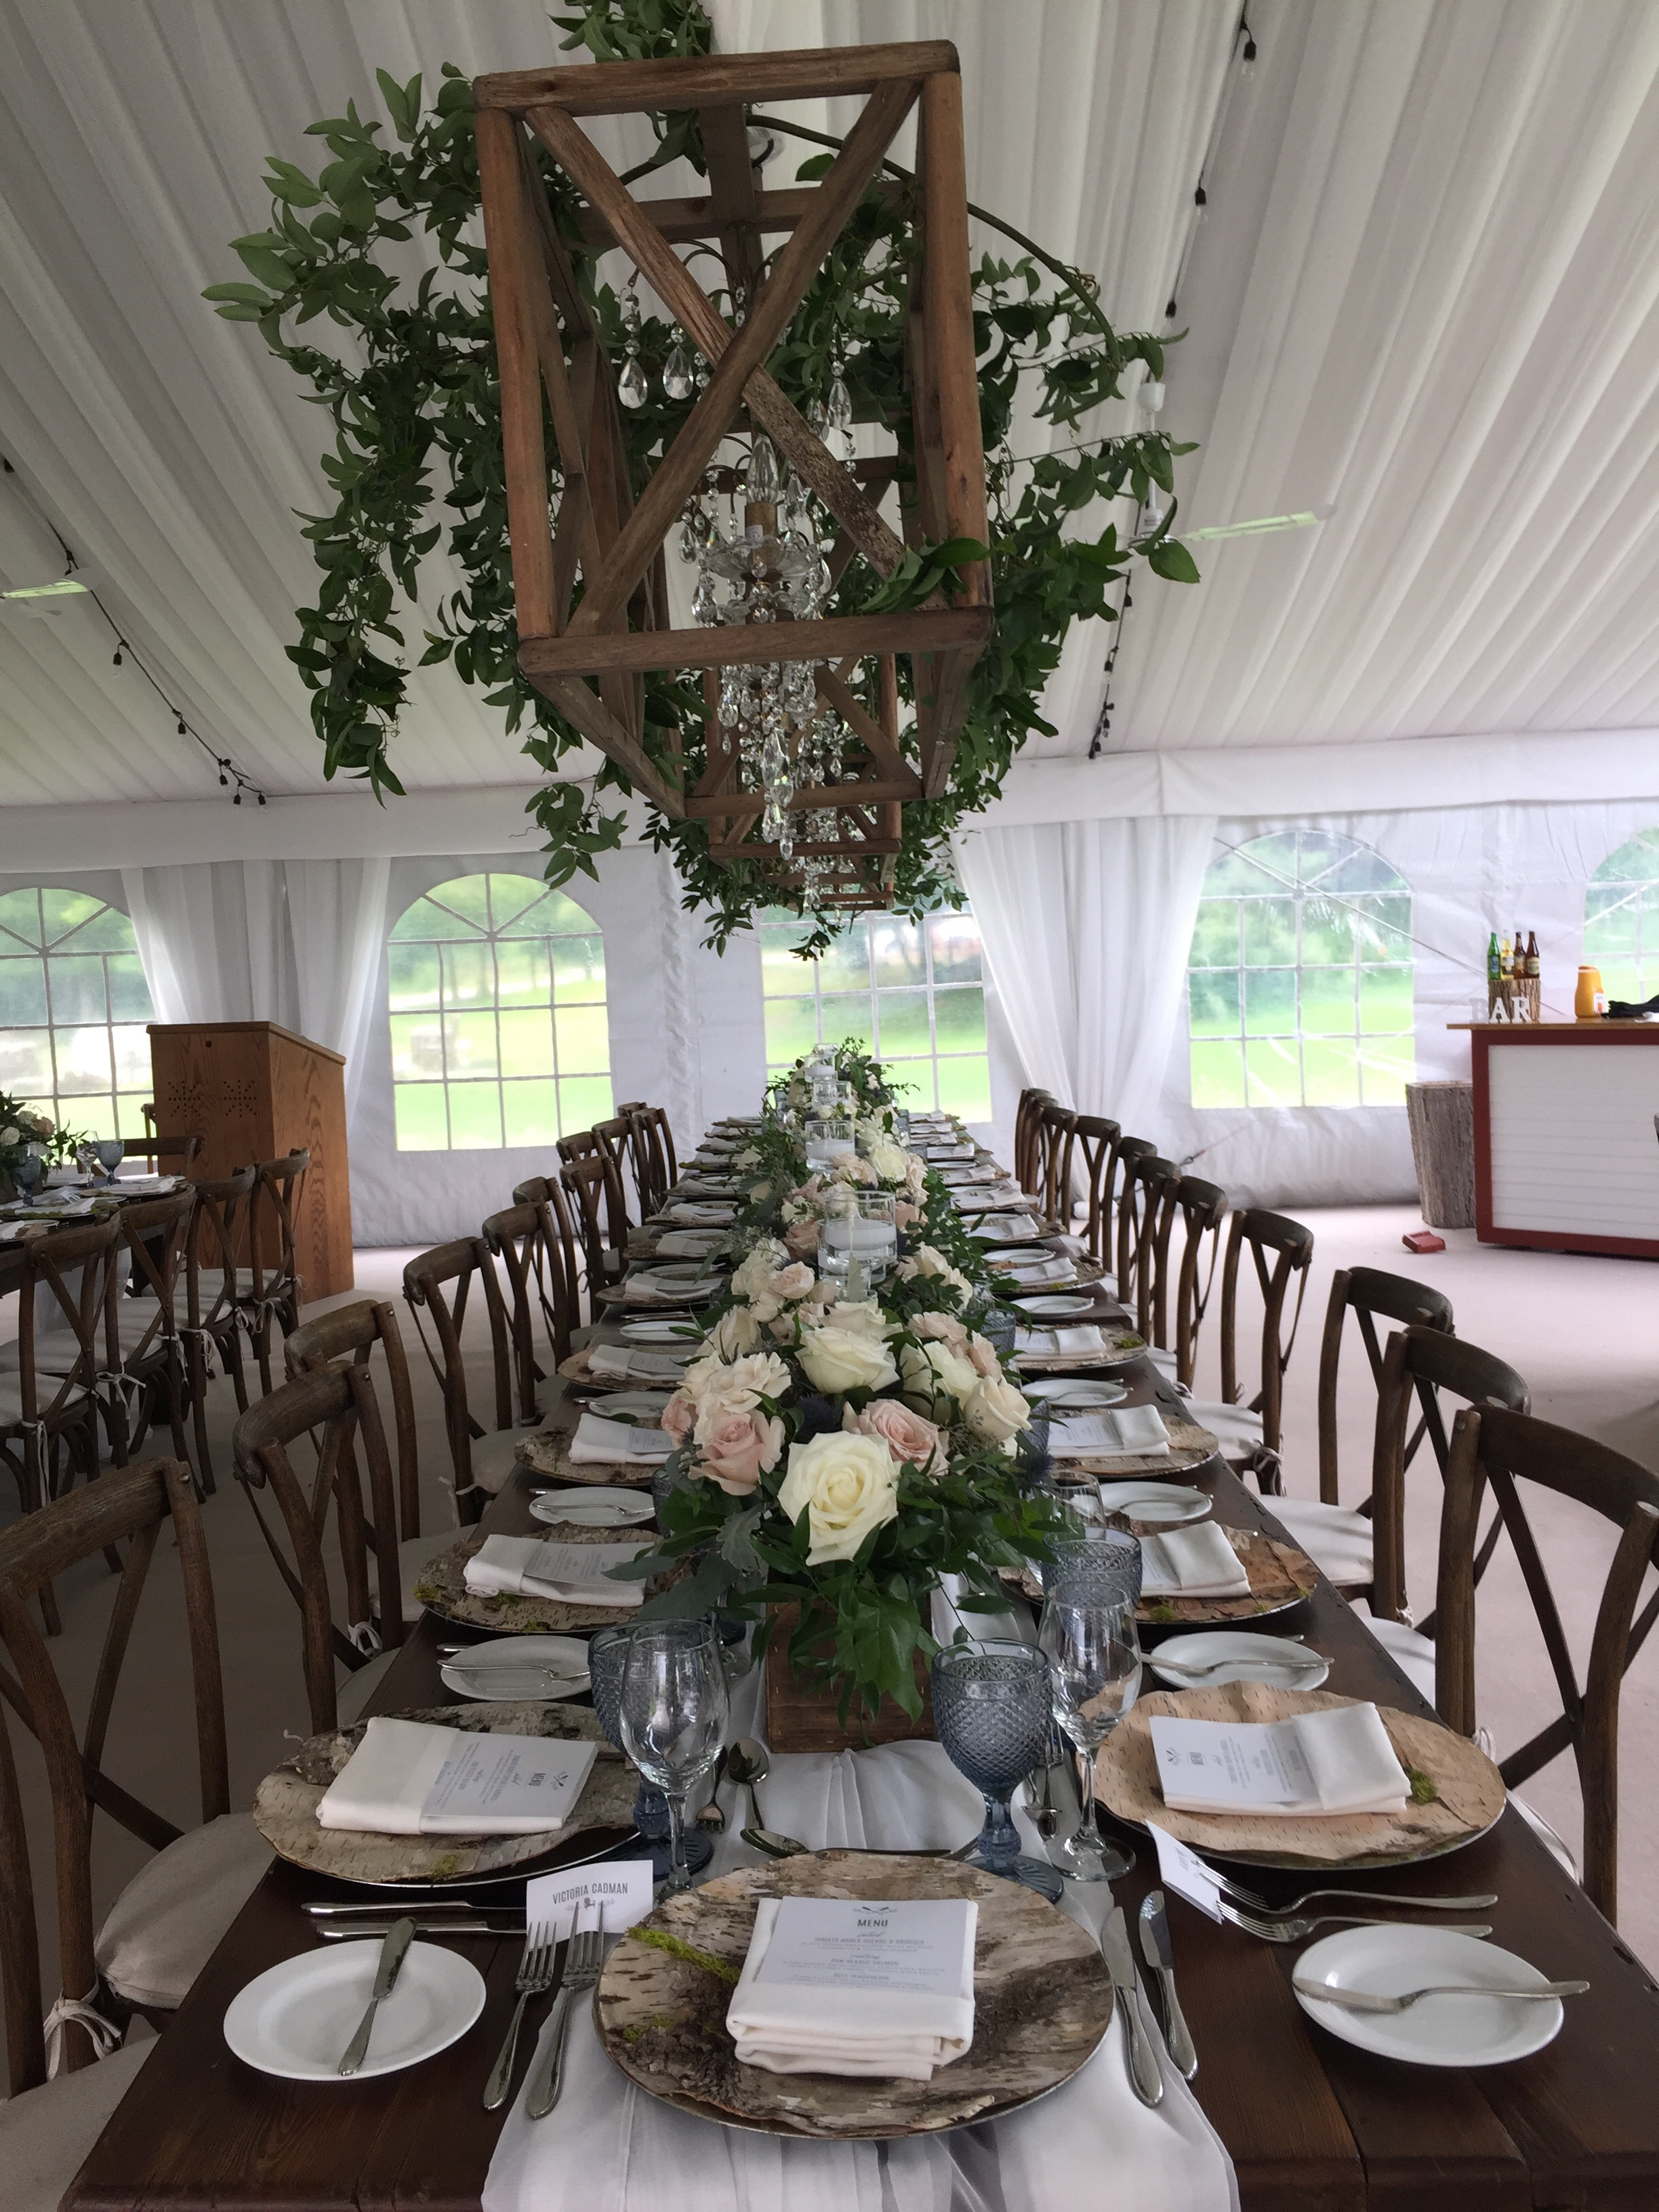 Muskoka411 Gets Action Table Stolen From Windermere House Wedding